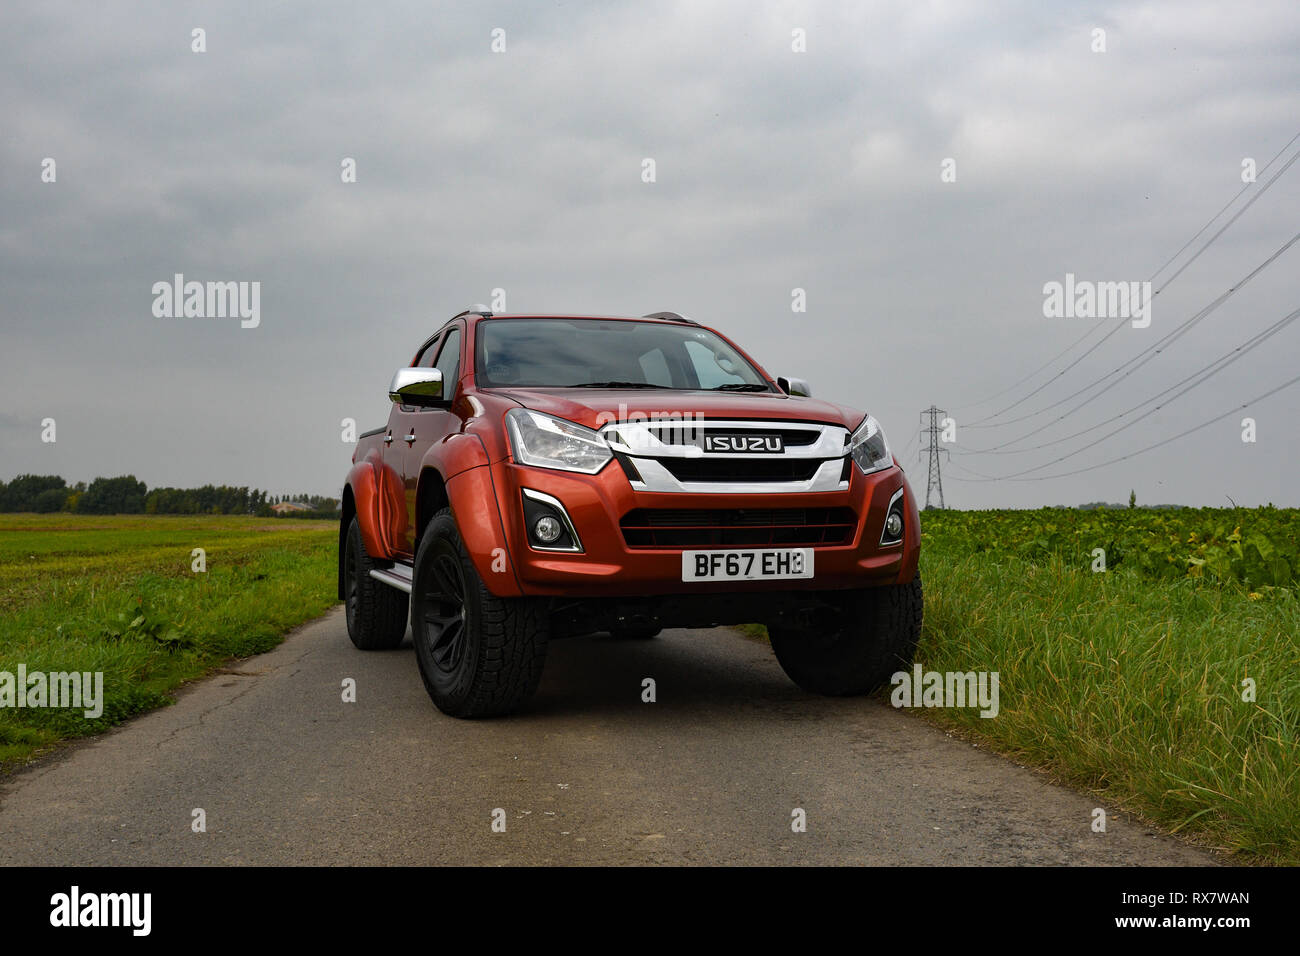 https www alamy com isuzu d max arctic trucks at35 parked on a country lane image239889405 html